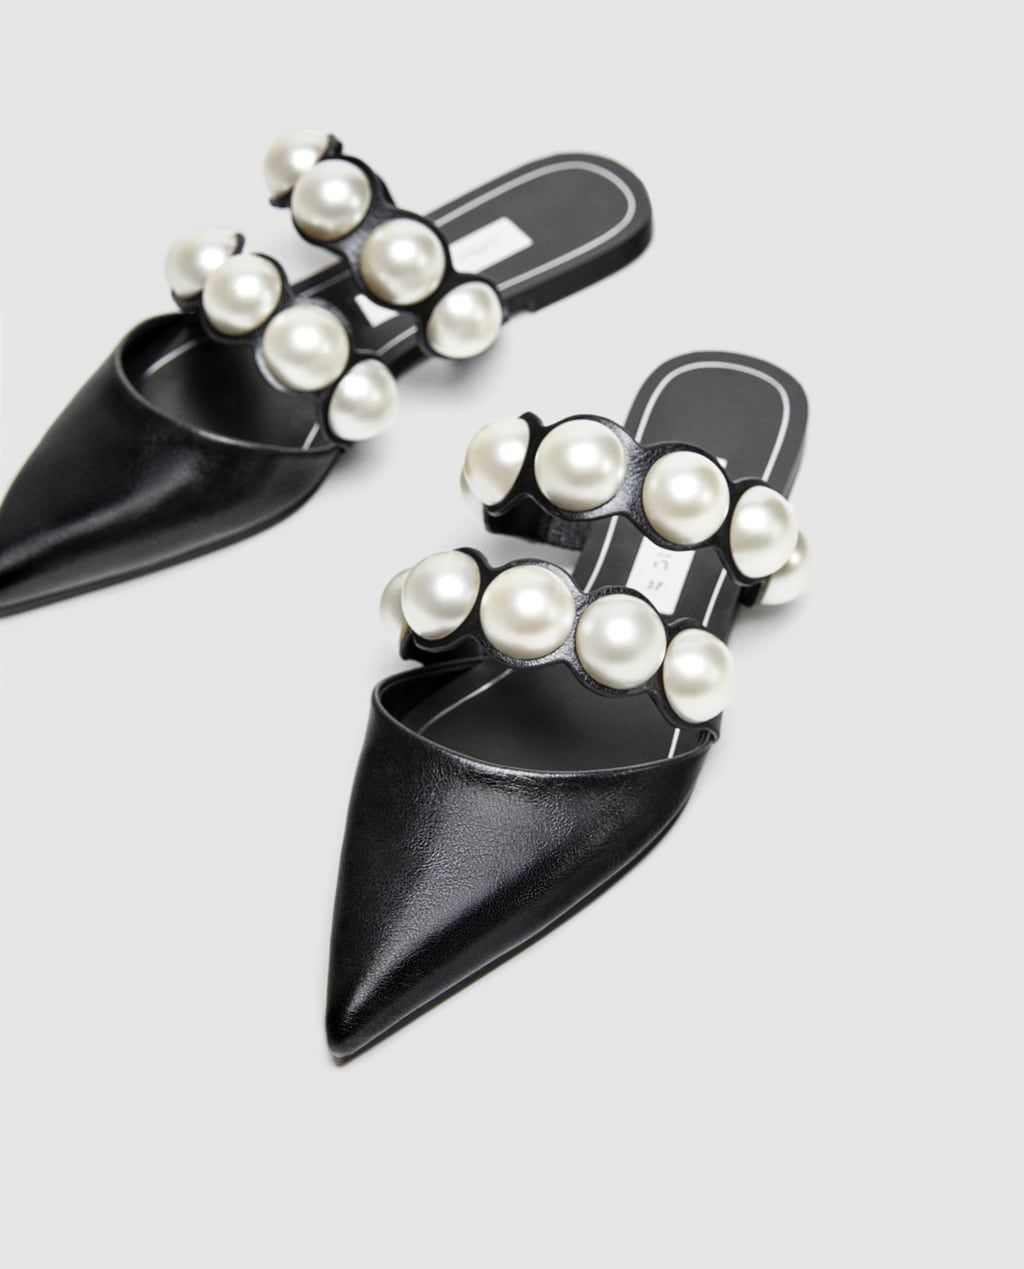 f9ece9c4066 Image 3 of FLAT MULES WITH PEARL BEADS from Zara